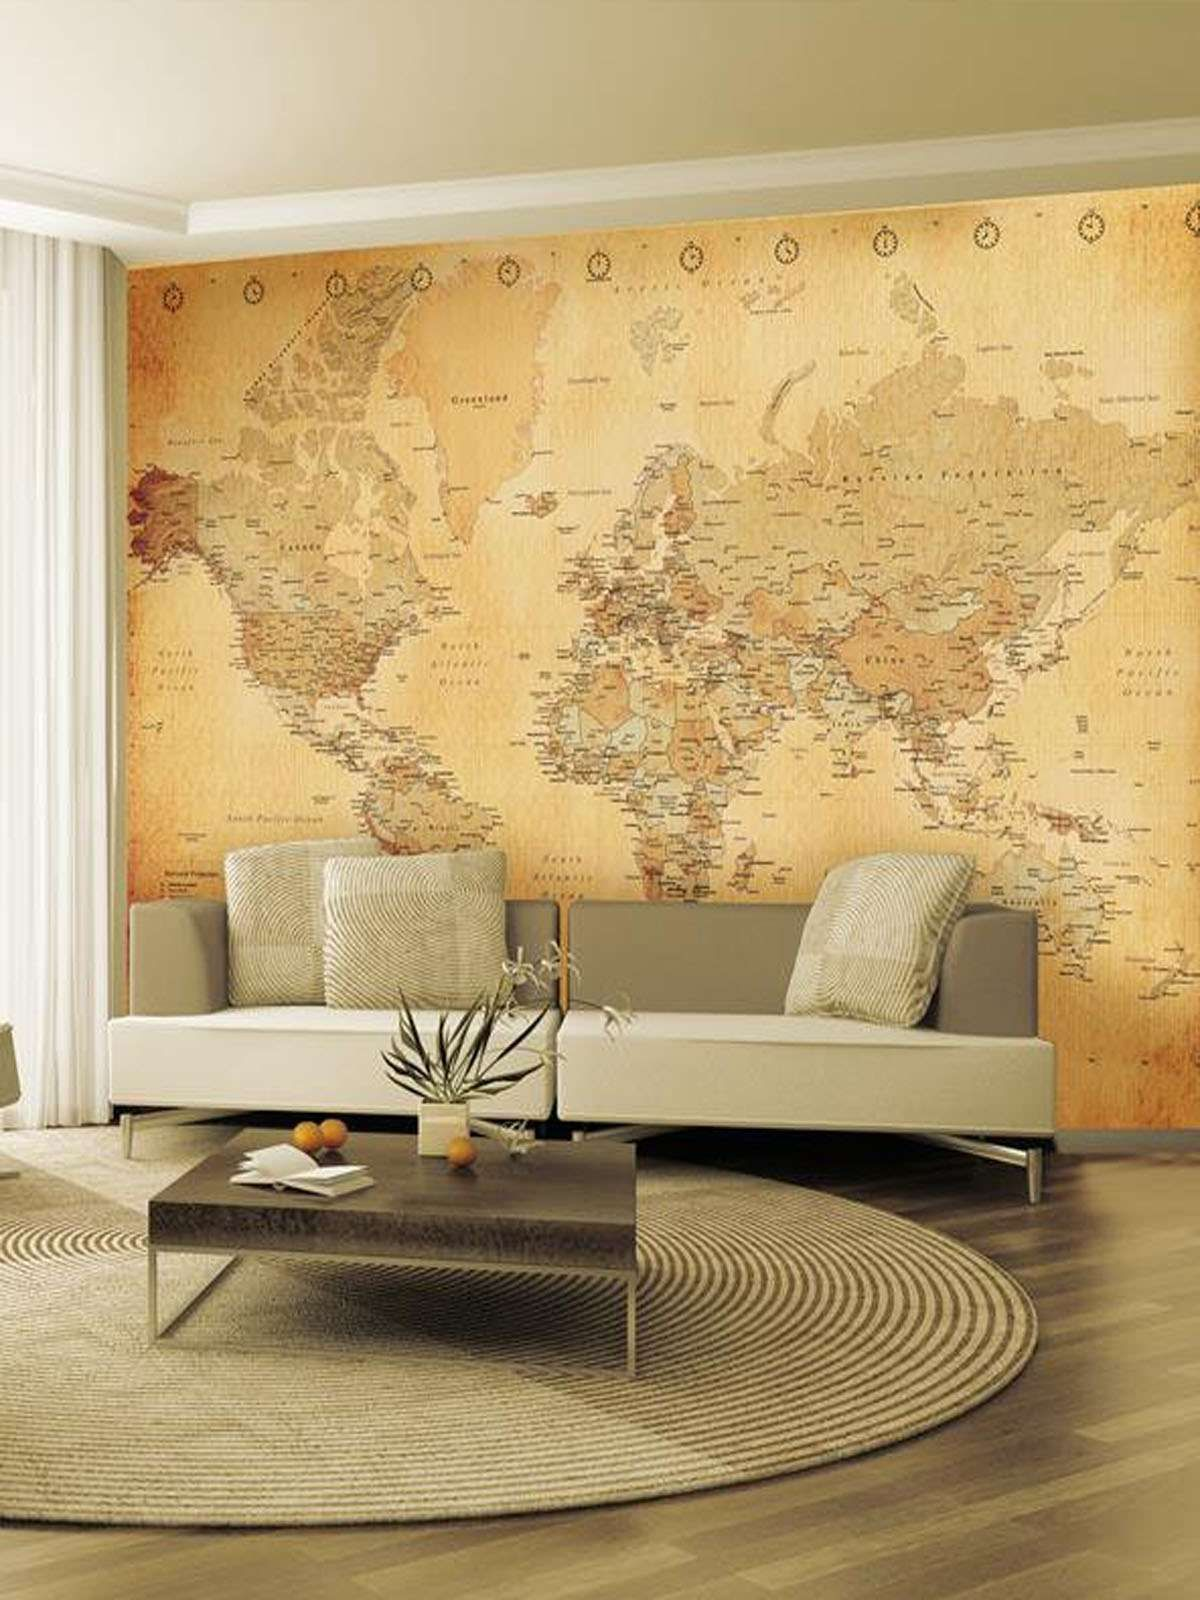 Old Map Giant Easy Hang Wall Mural. They deliver to US, about $100 ...